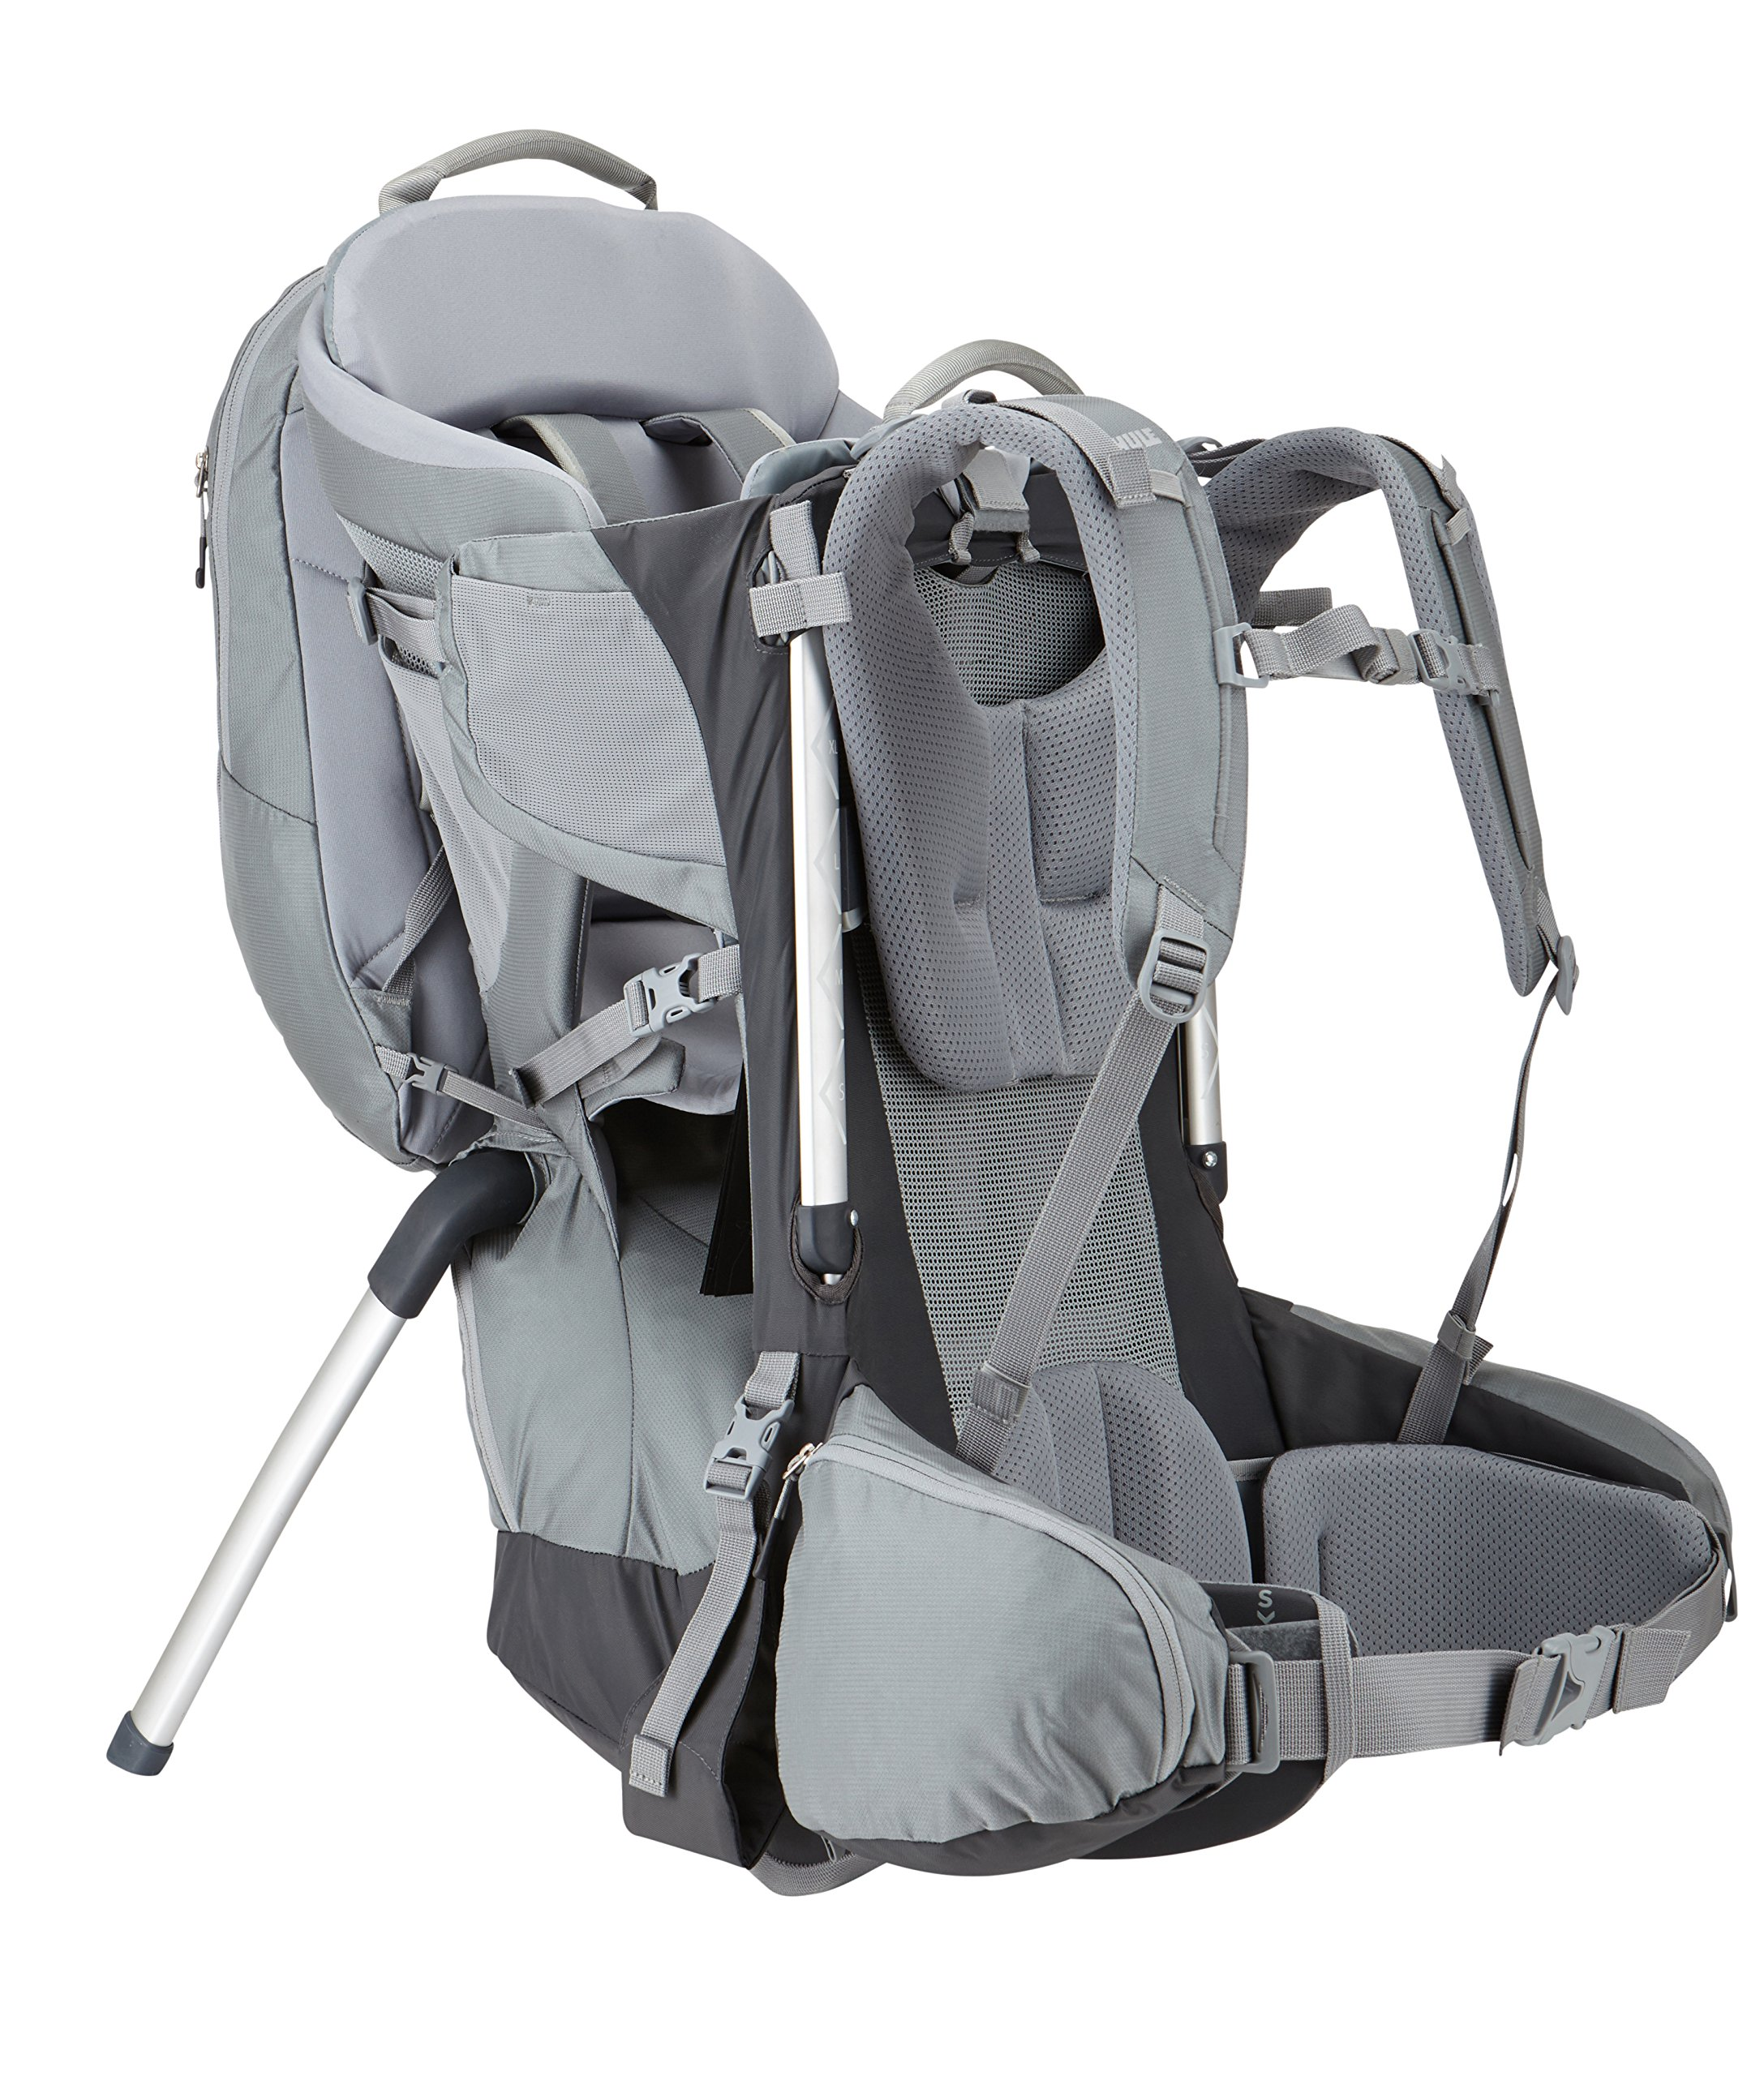 Thule Sapling Elite Child Carrier  Removable backpack and large zippered compartment store diapers, clothes and other gear Fully adjustable back panel and hip belt make the transition between parents quick and easy, Plush, height adjustable, ergonomic seat efficiently distributes the child's weight by providing inner thigh support Breathable back panel allows air to circulate around your back 3